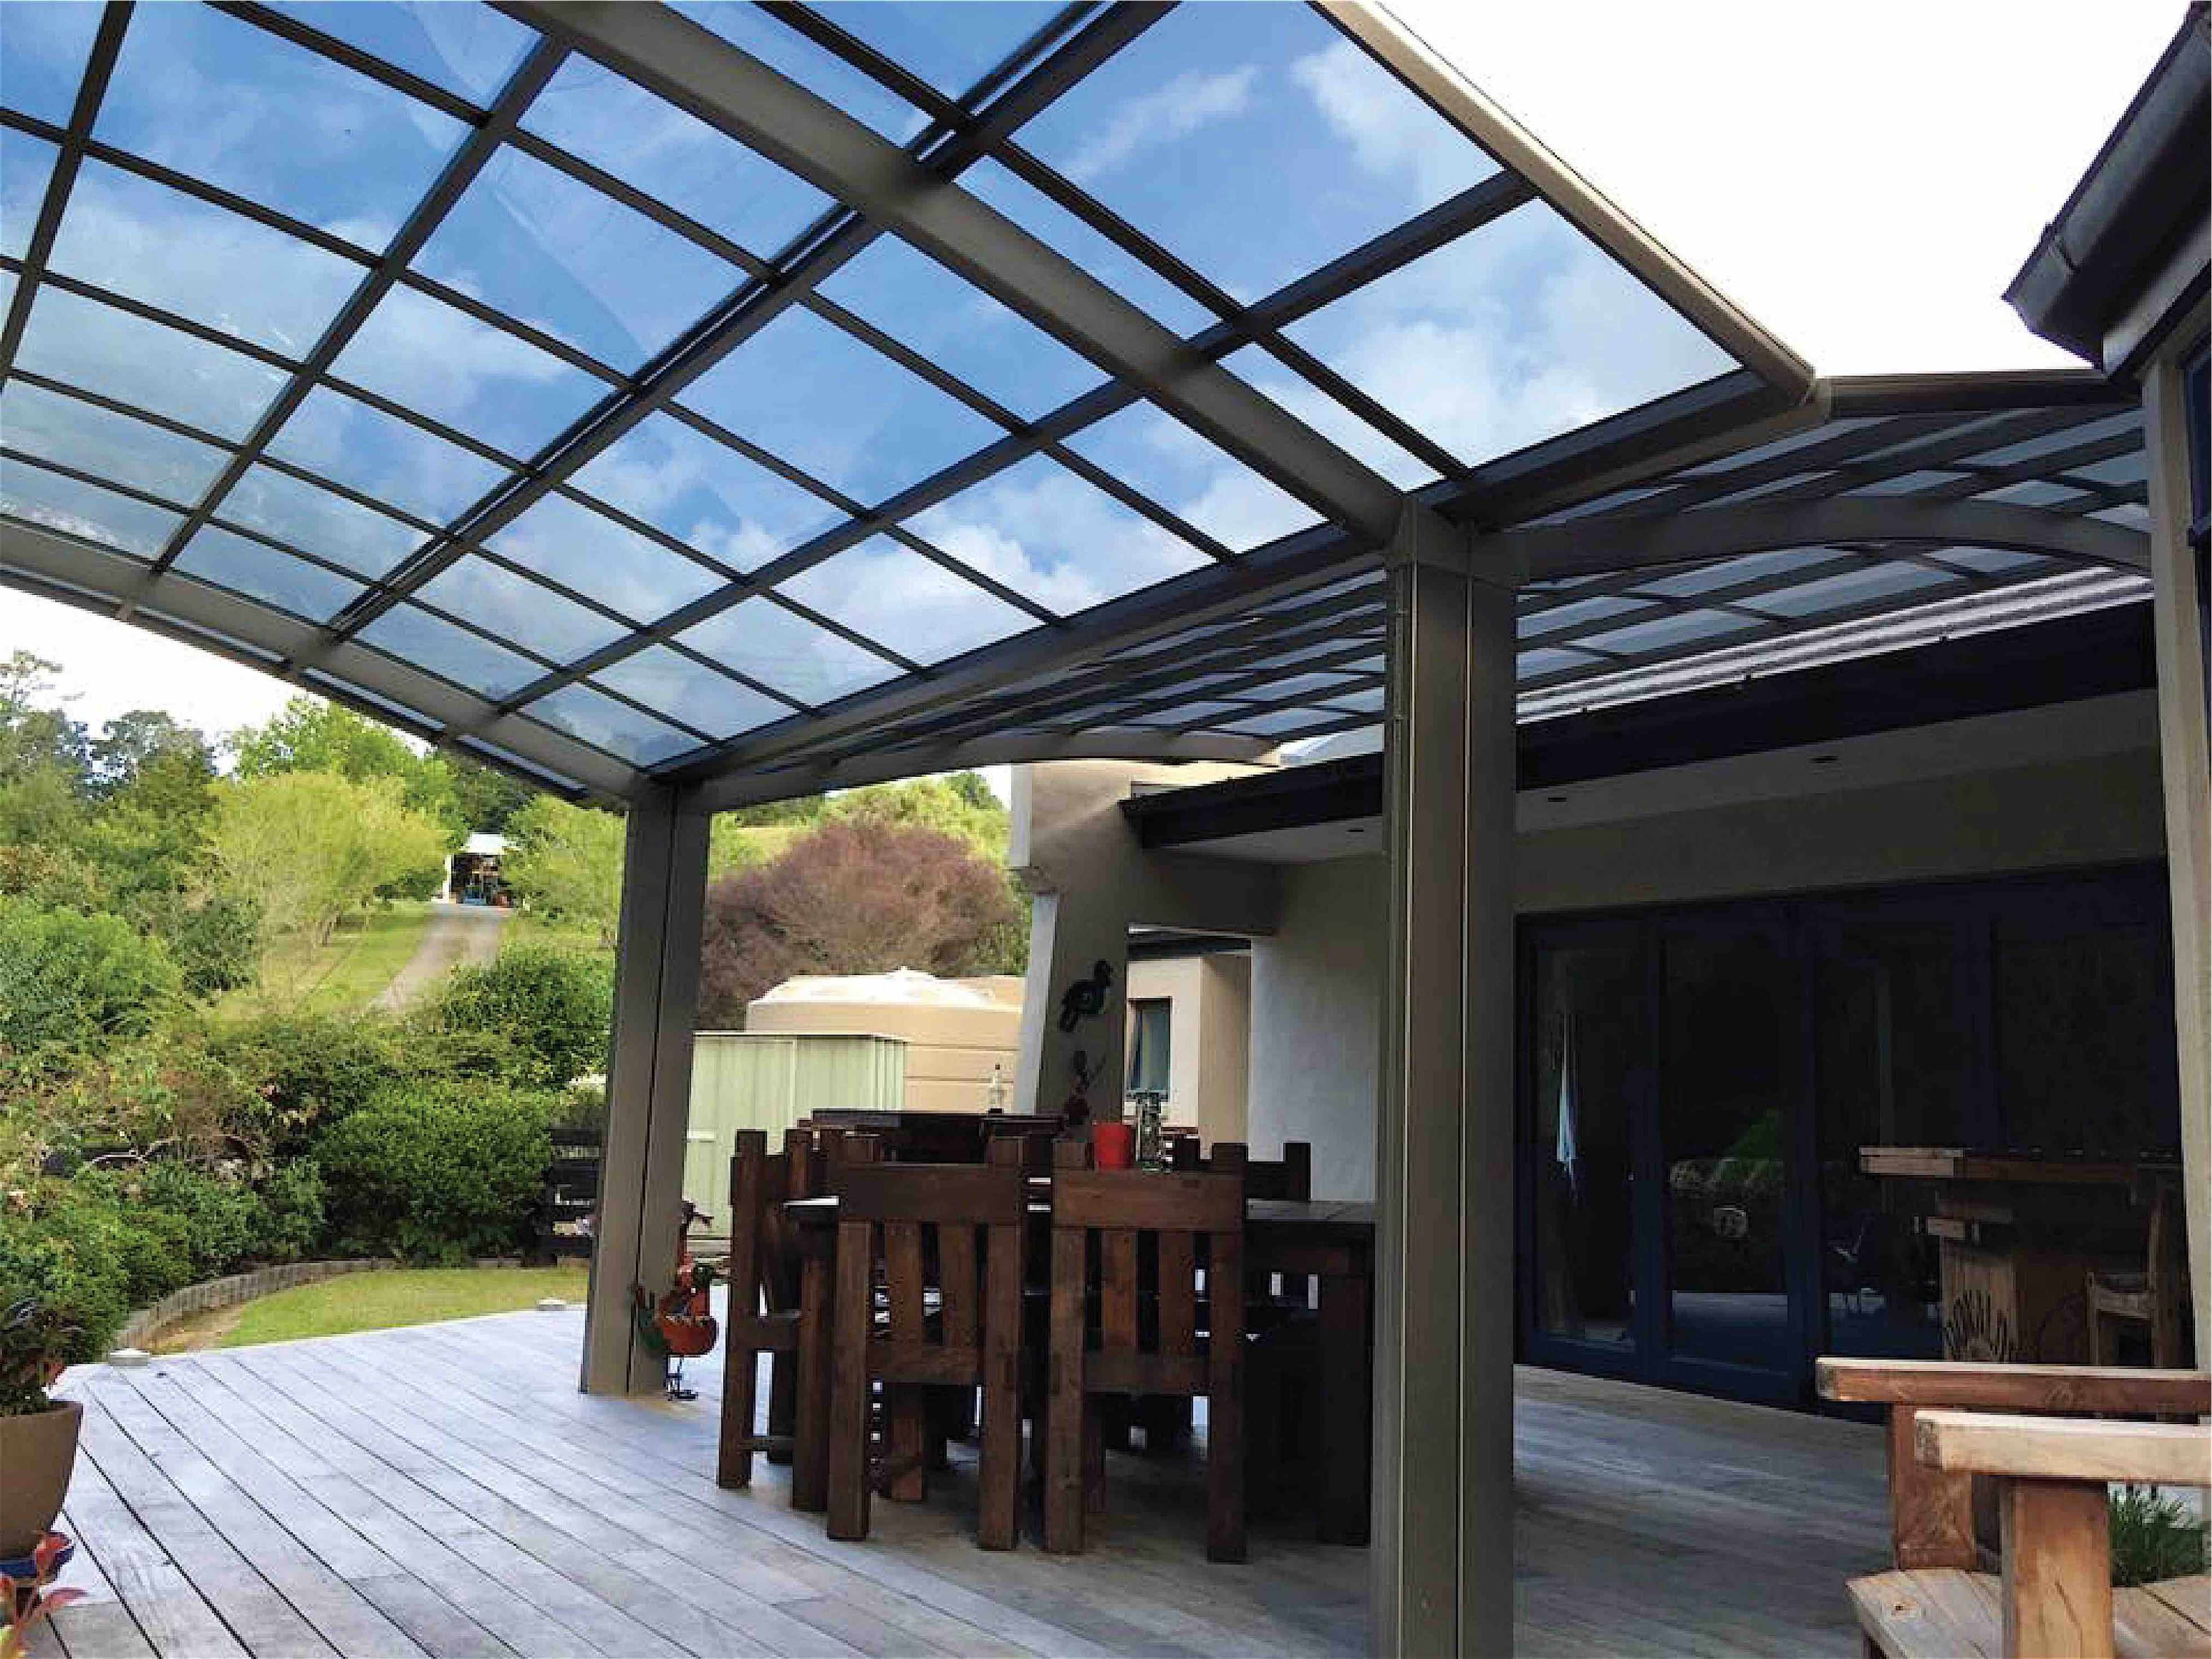 Freestanding Shade Covers | Cantaport Carports Ideas Japan